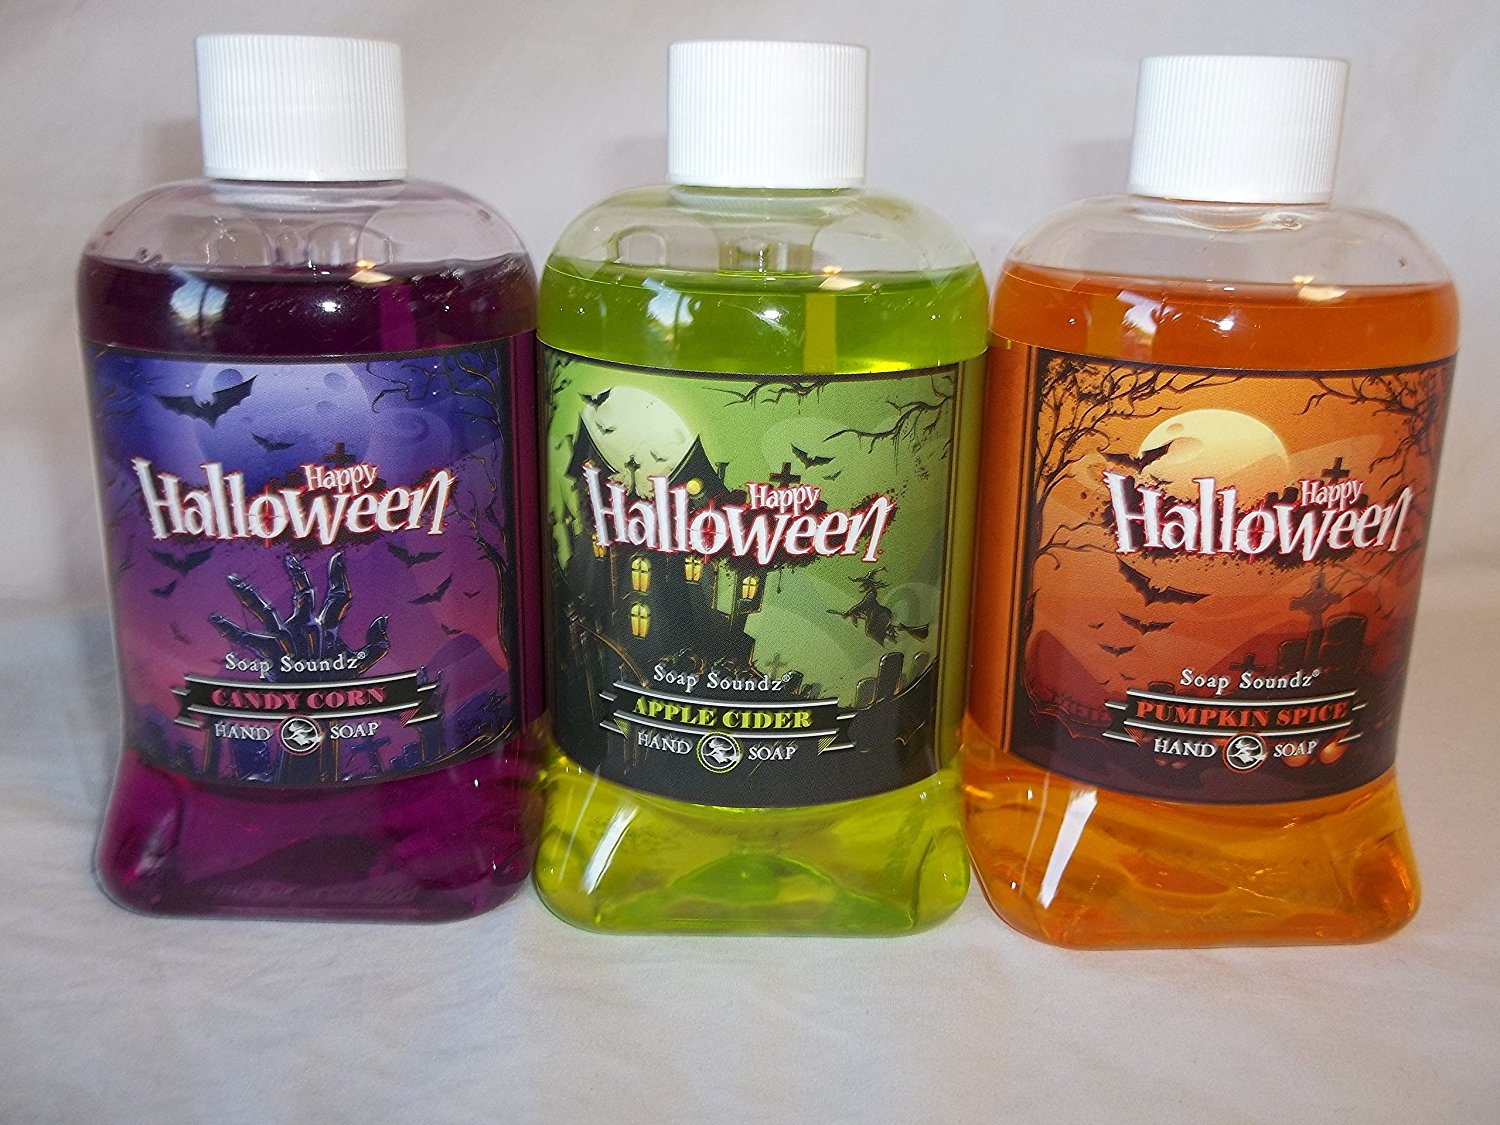 set of 3 happy halloween hand set of 3 happy halloween hand soap soundz pumpkin spice